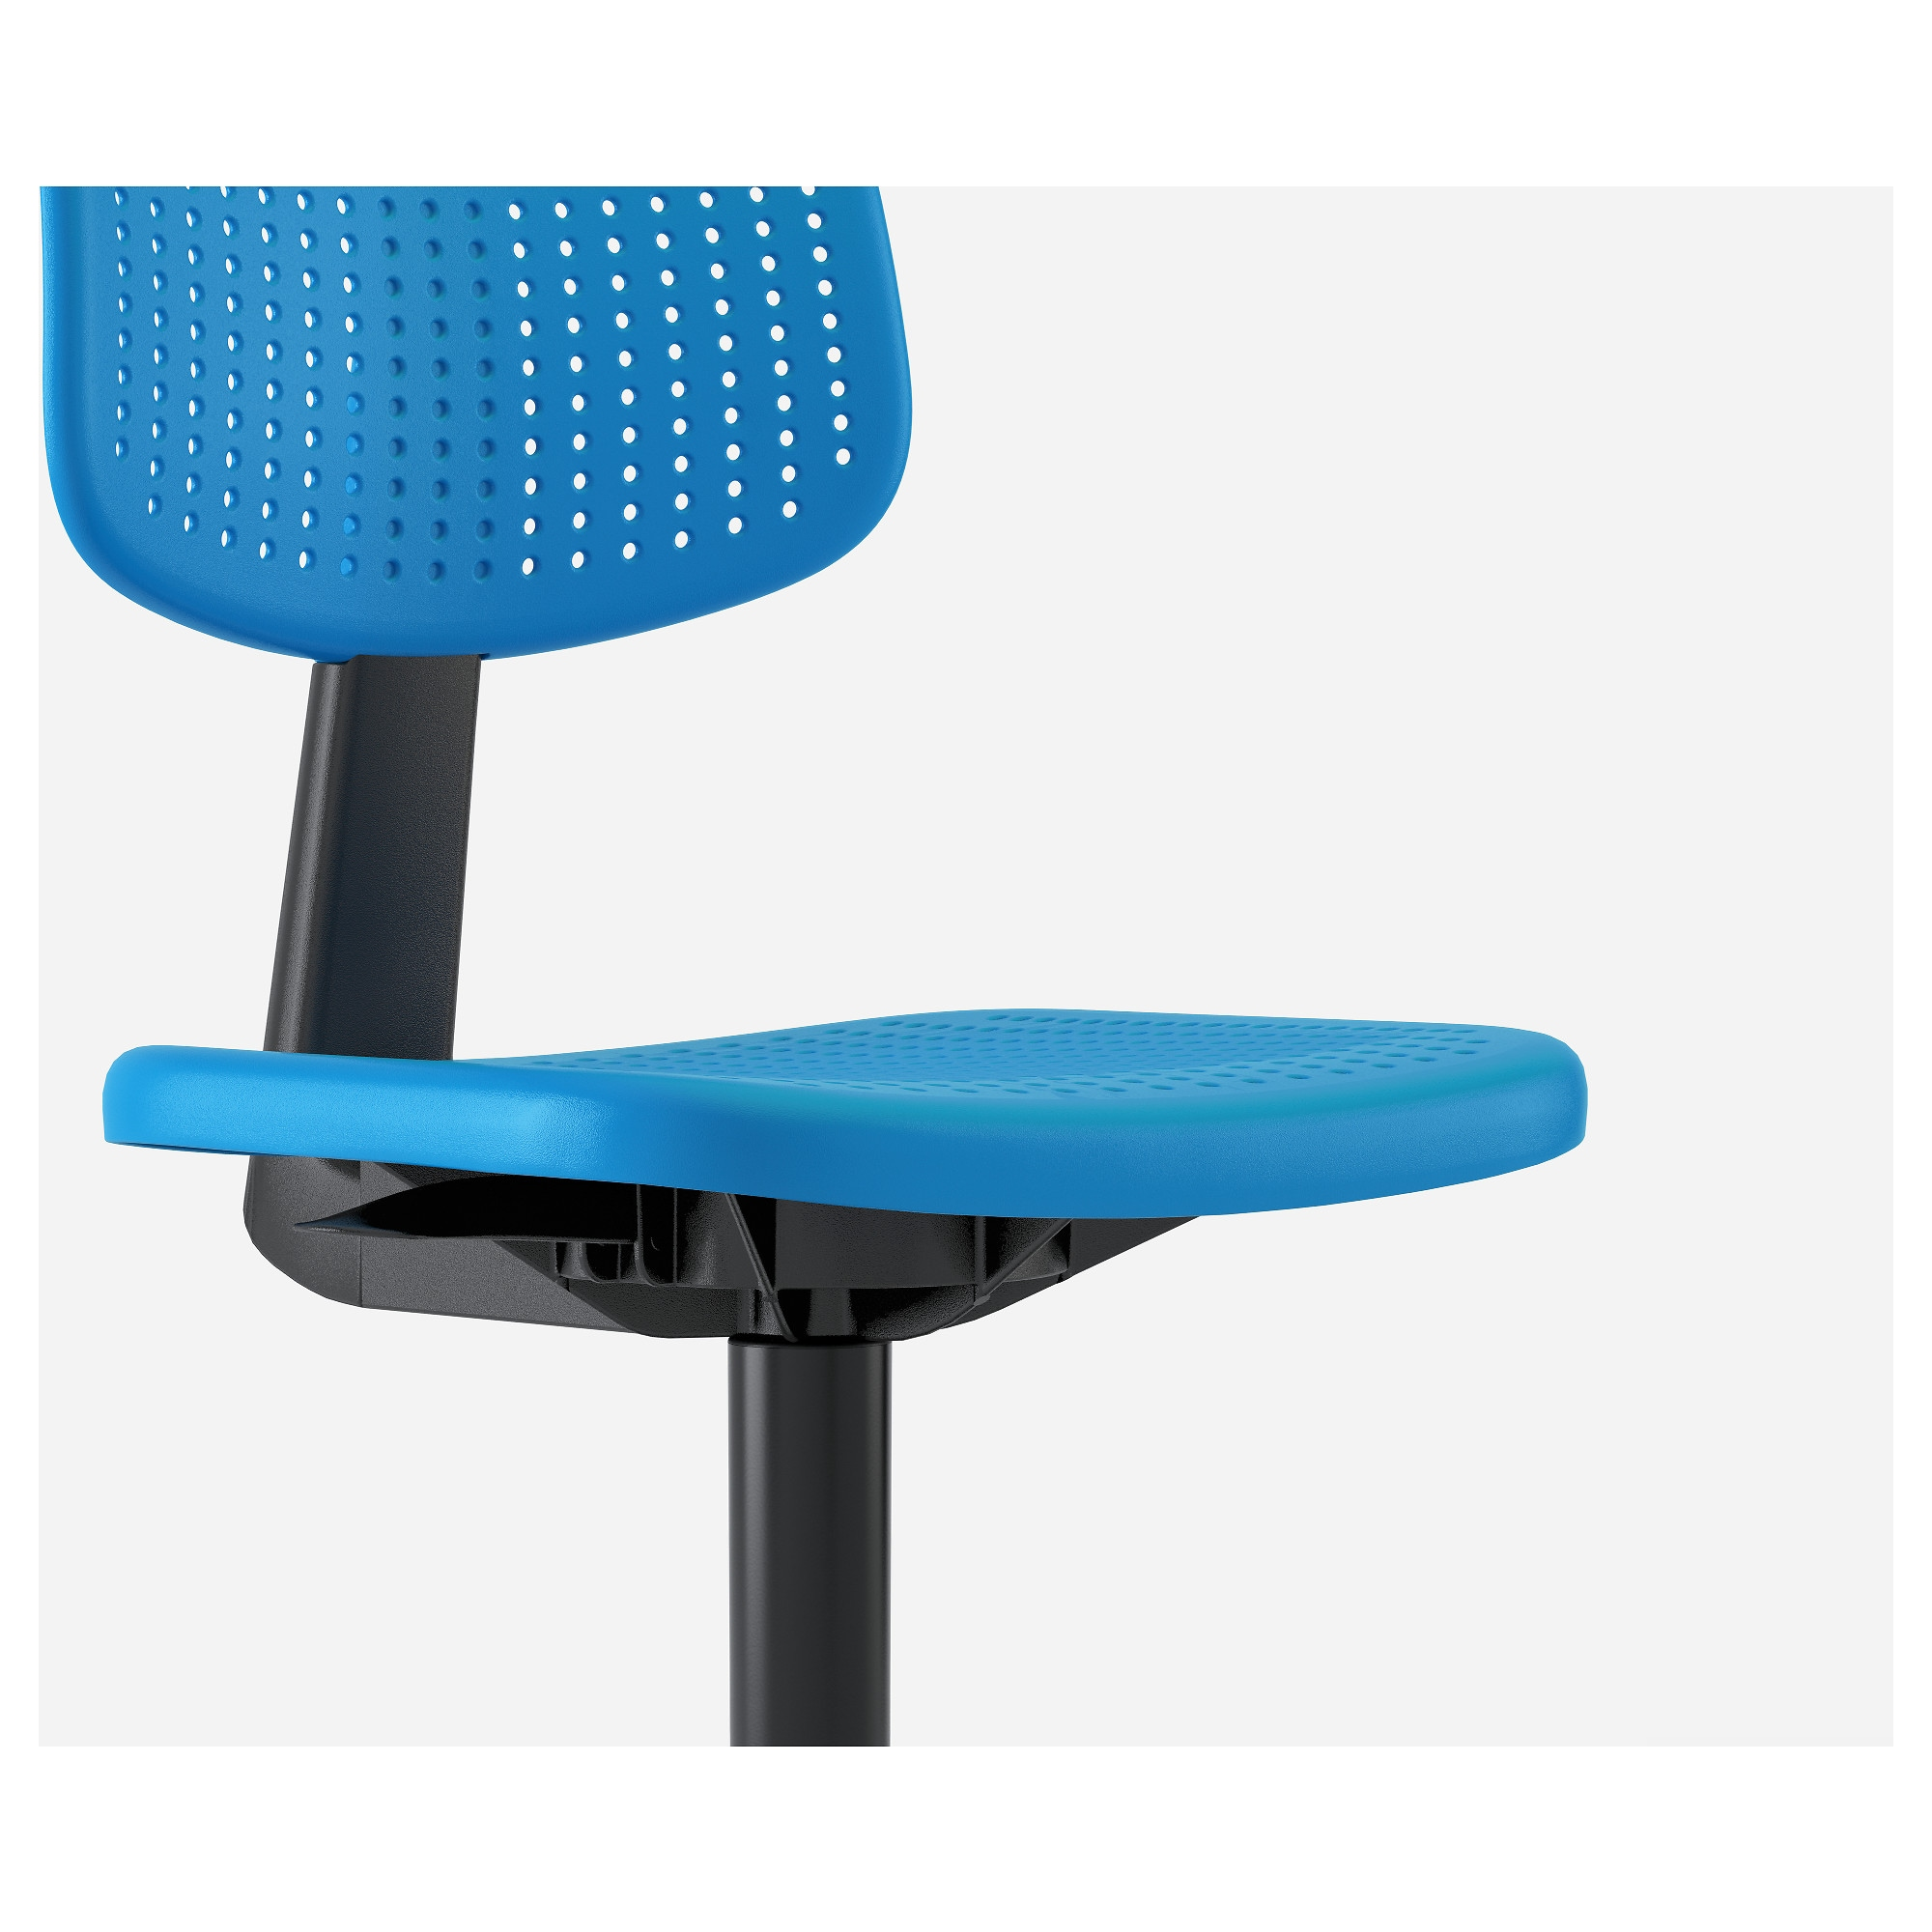 ALRIK Swivel chair - blue - IKEA